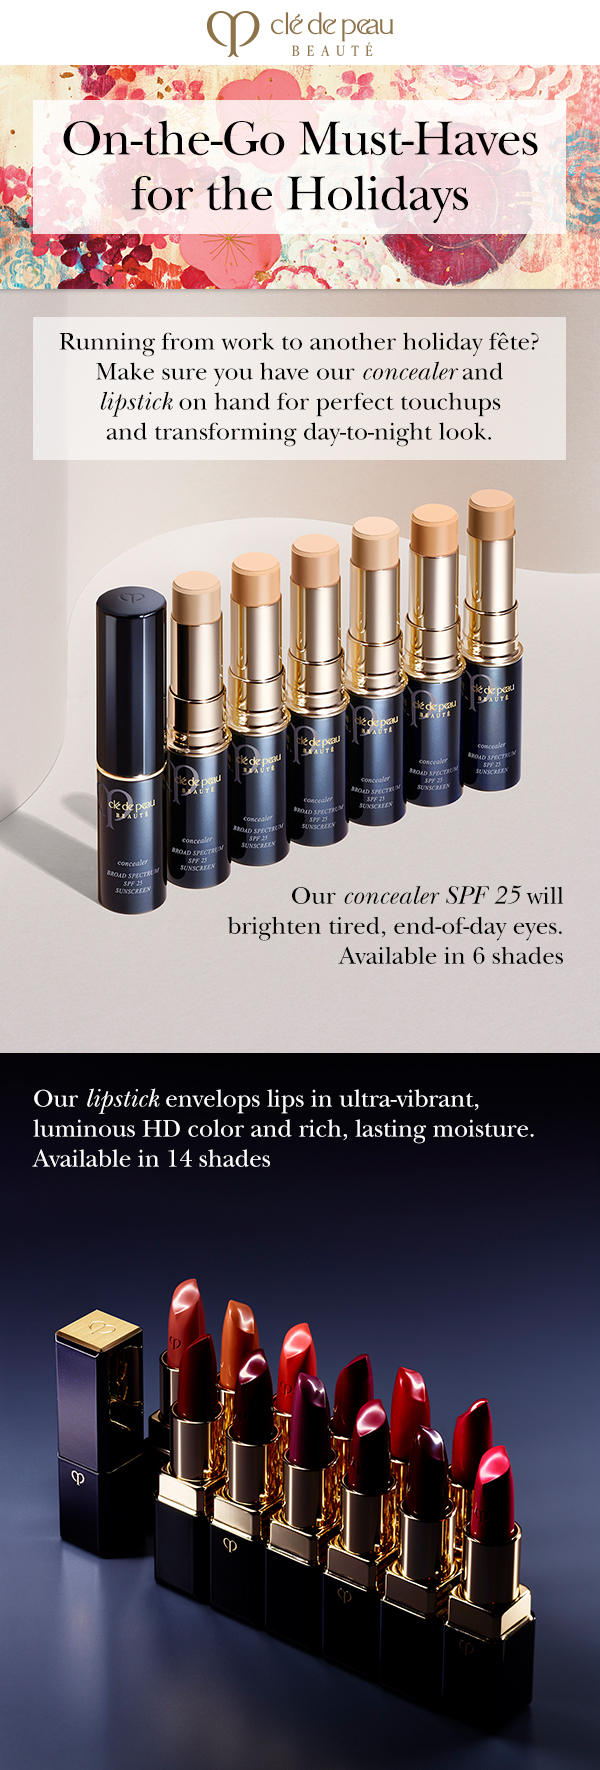 CPB-WEB-F17-197_W45_NL_Complexion_Concealer_and_Lips_FINAL_SIS.jpg